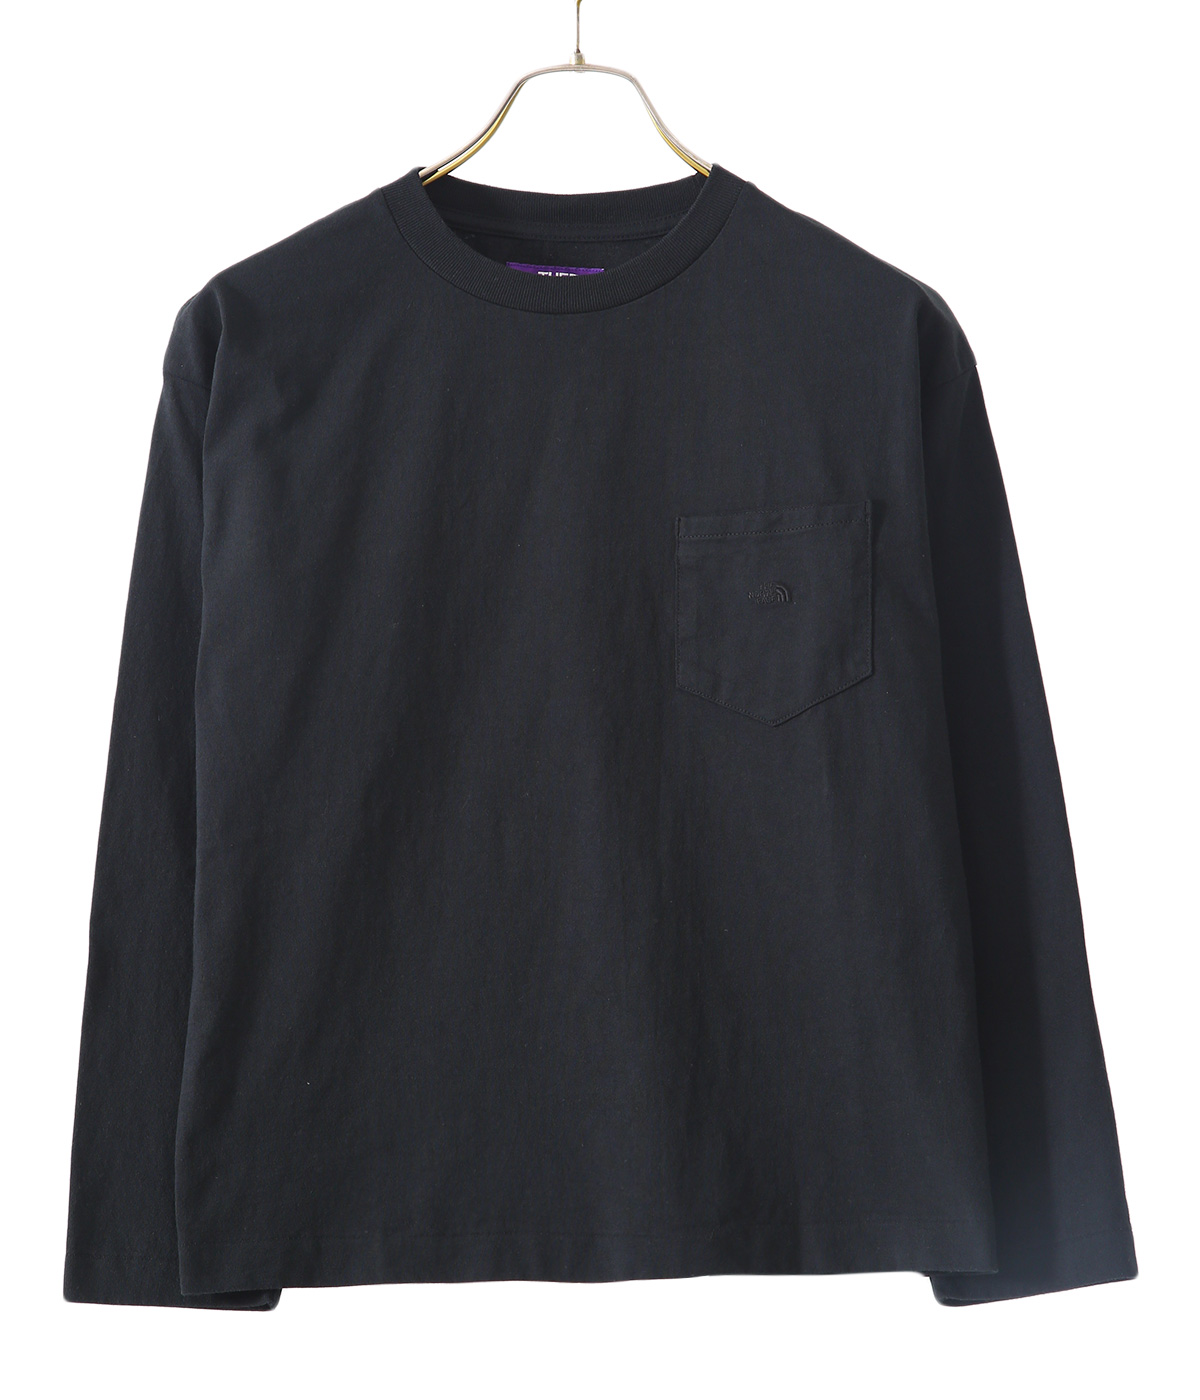 【レディース】7oz L/S Pocket Tee